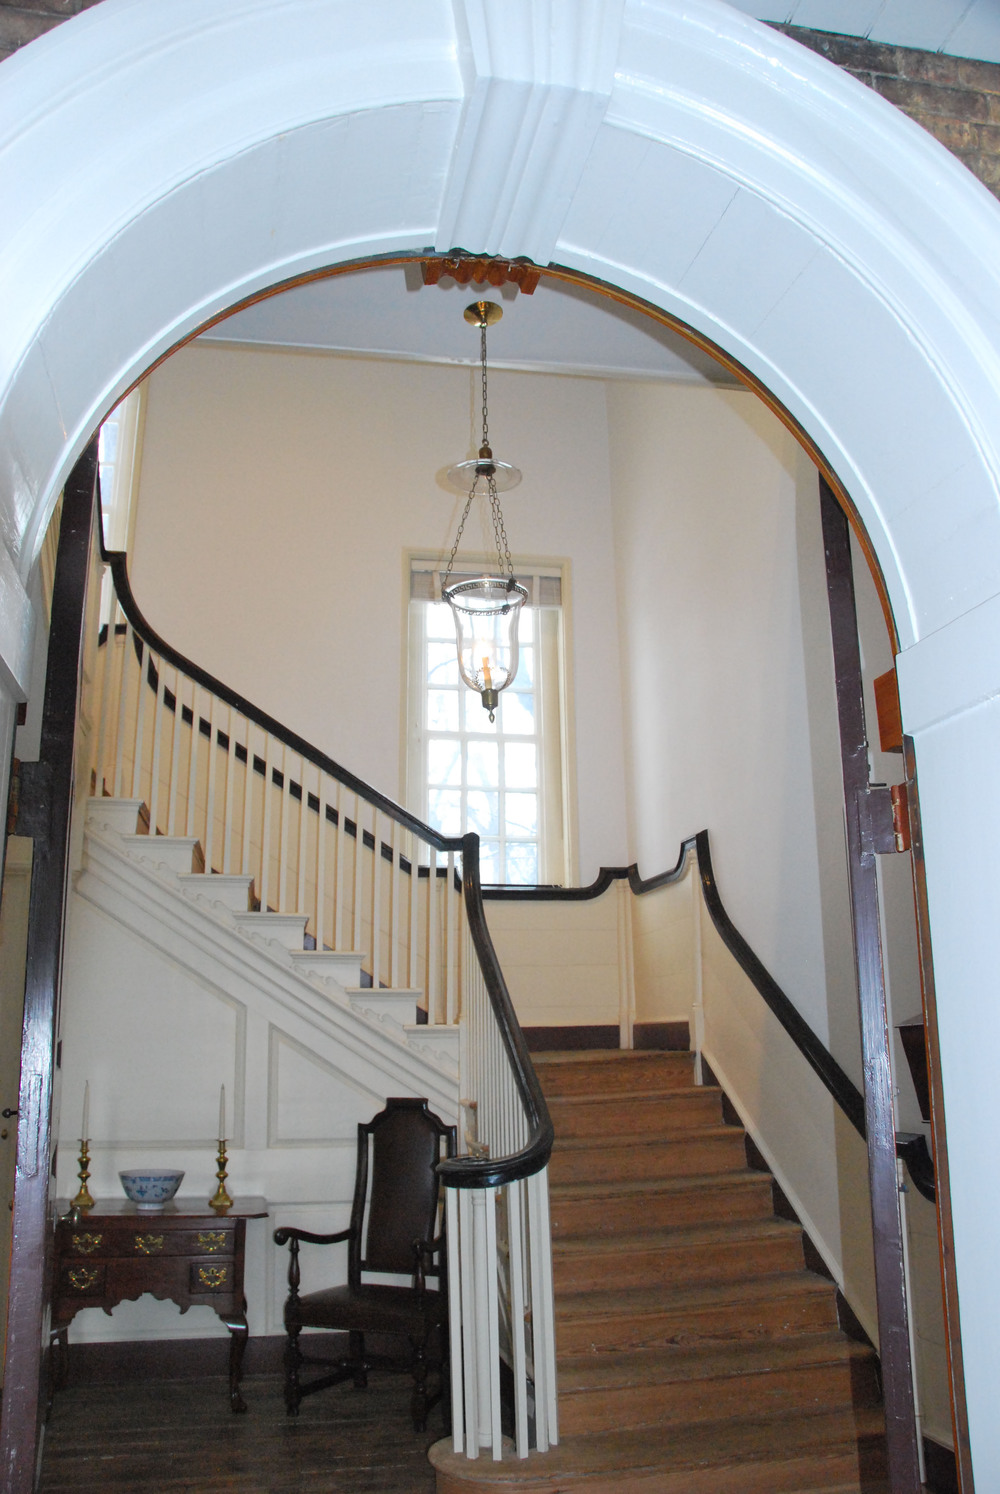 The staircase as seen through the arched doorway at Woodford.